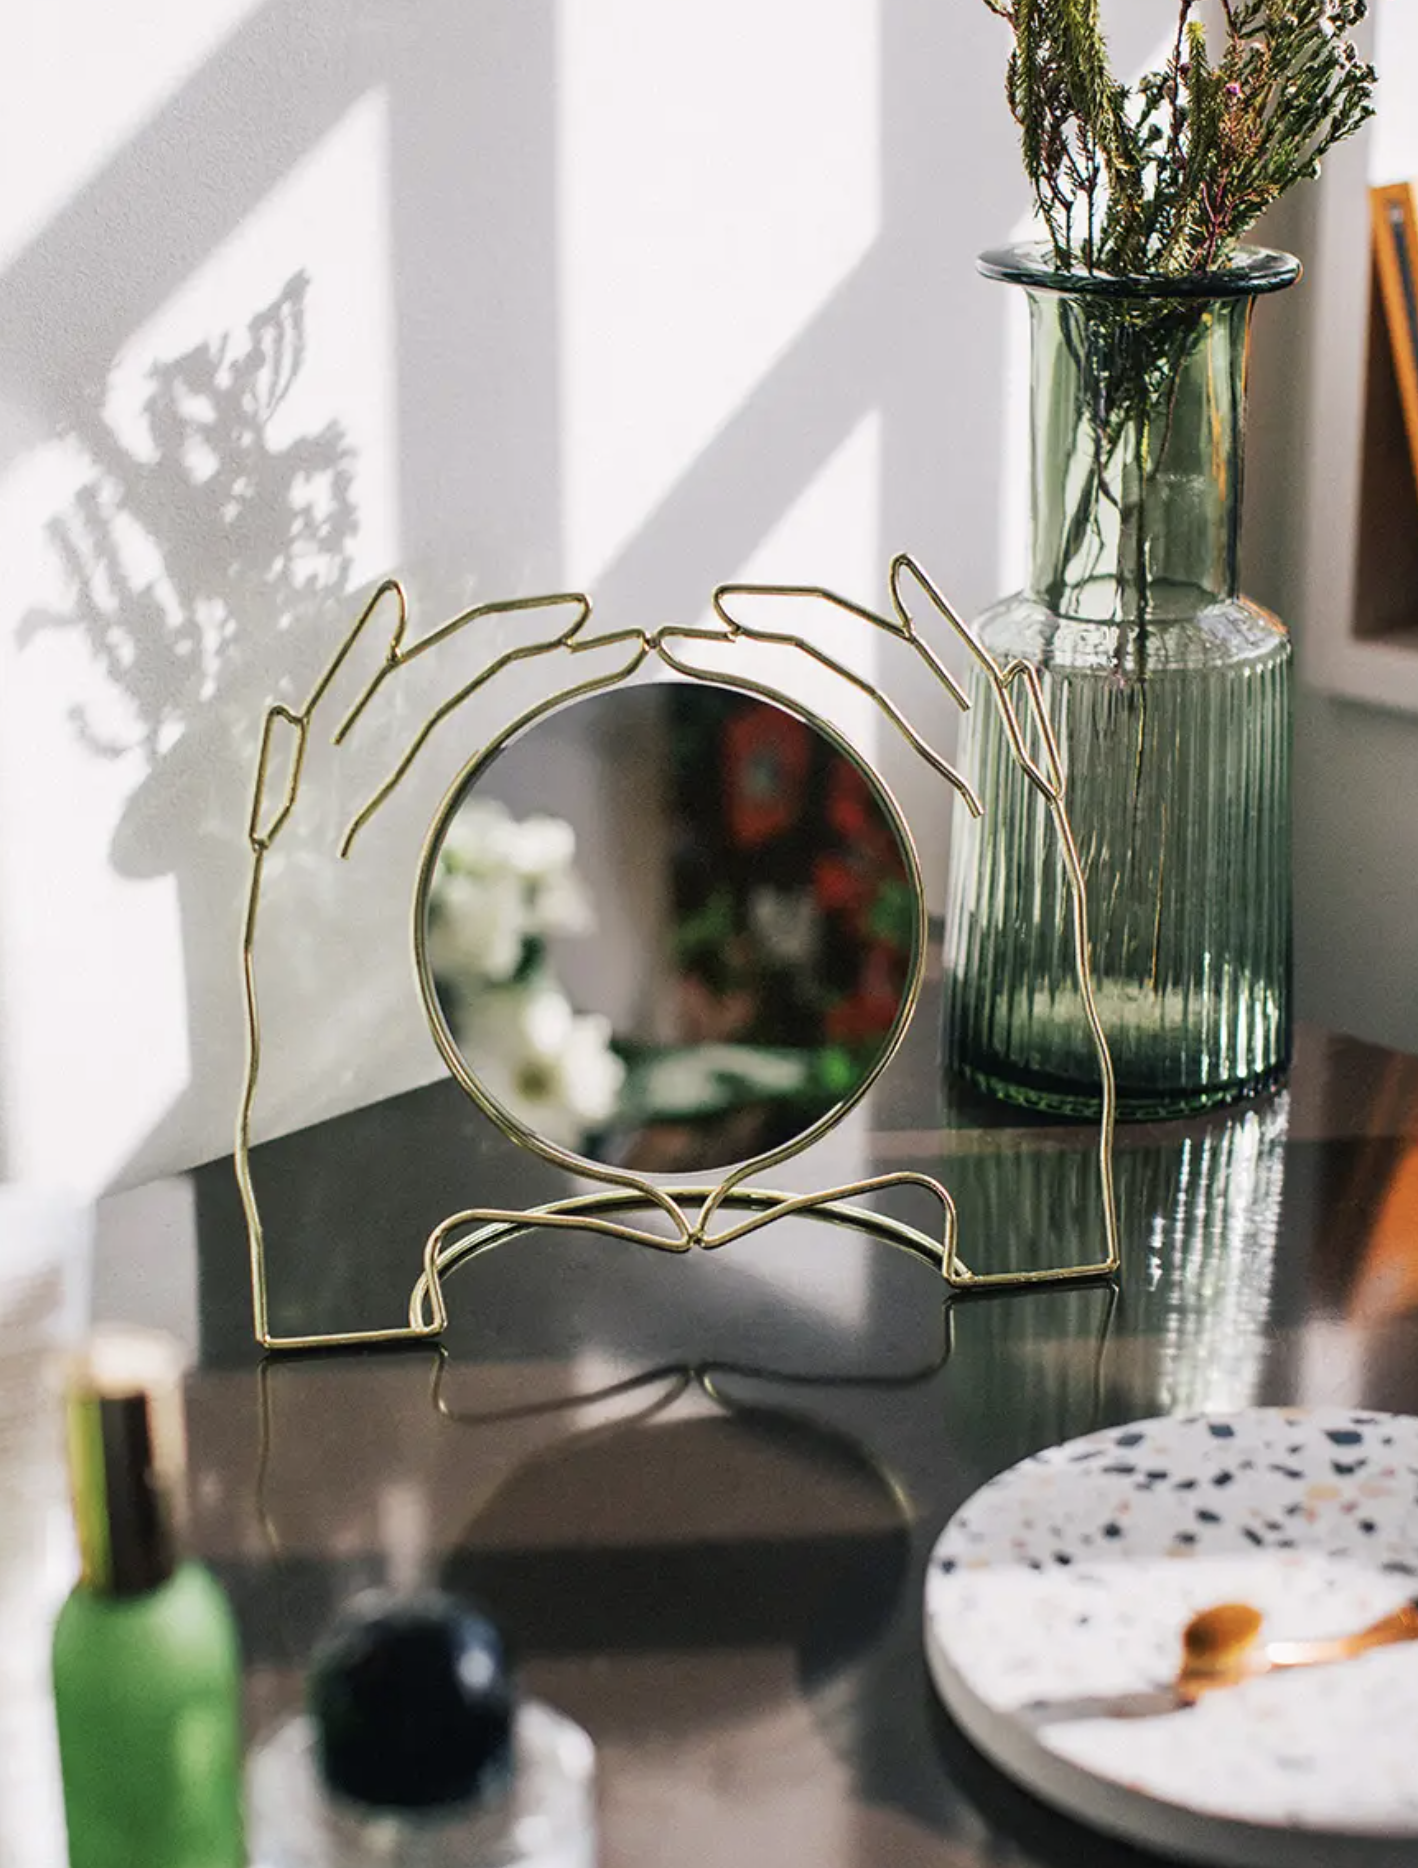 Image of Xeria Table Mirror on table